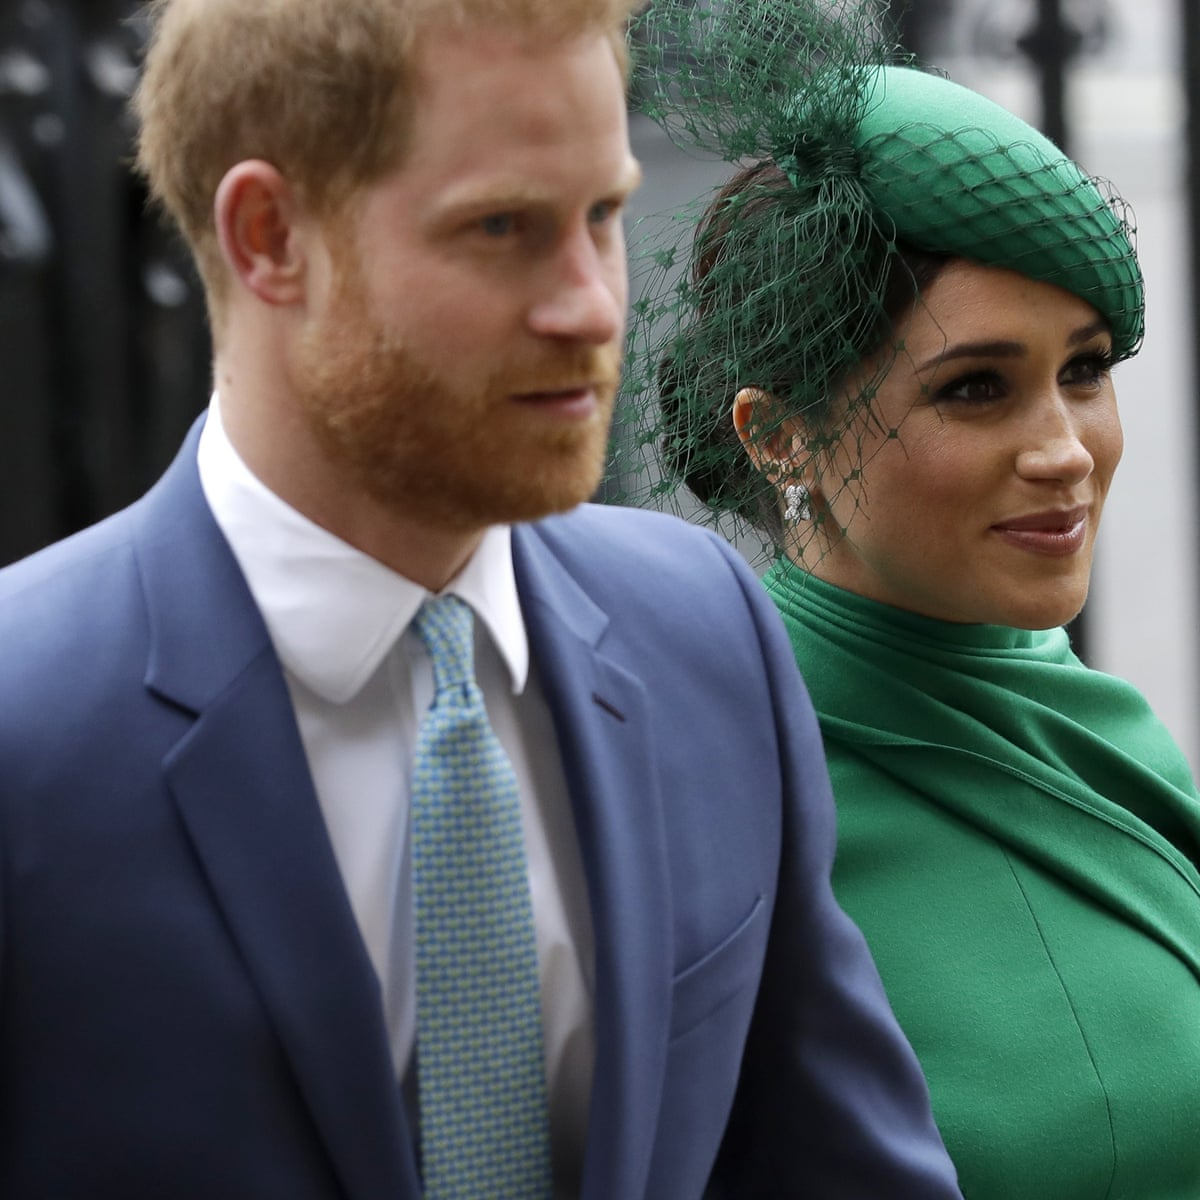 meghan and harry did not cooperate with book authors court told meghan duchess of sussex the guardian meghan and harry did not cooperate with